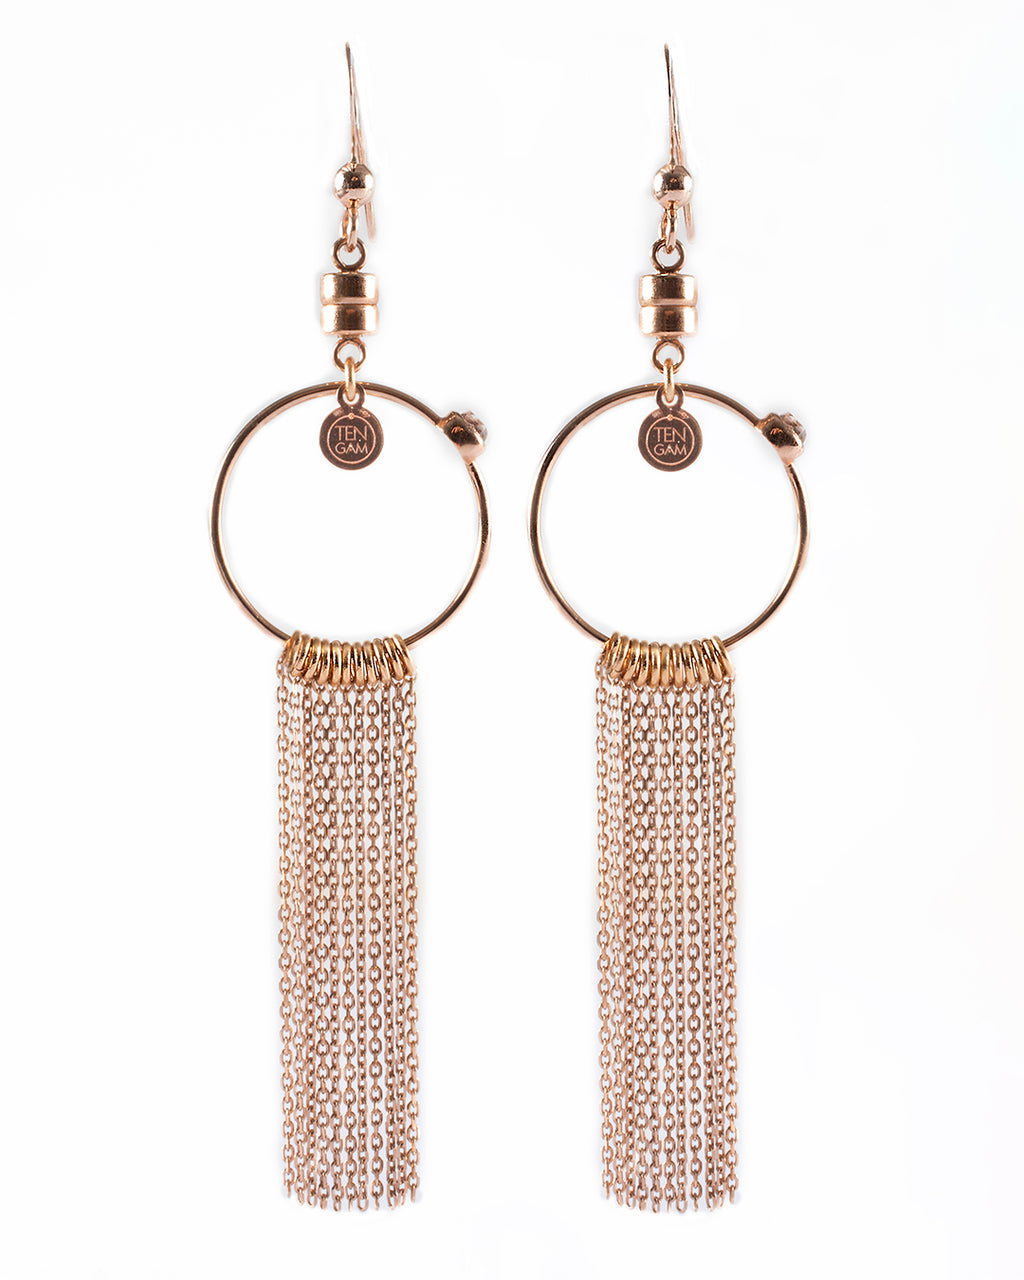 Dangling earrings with fringes - 001